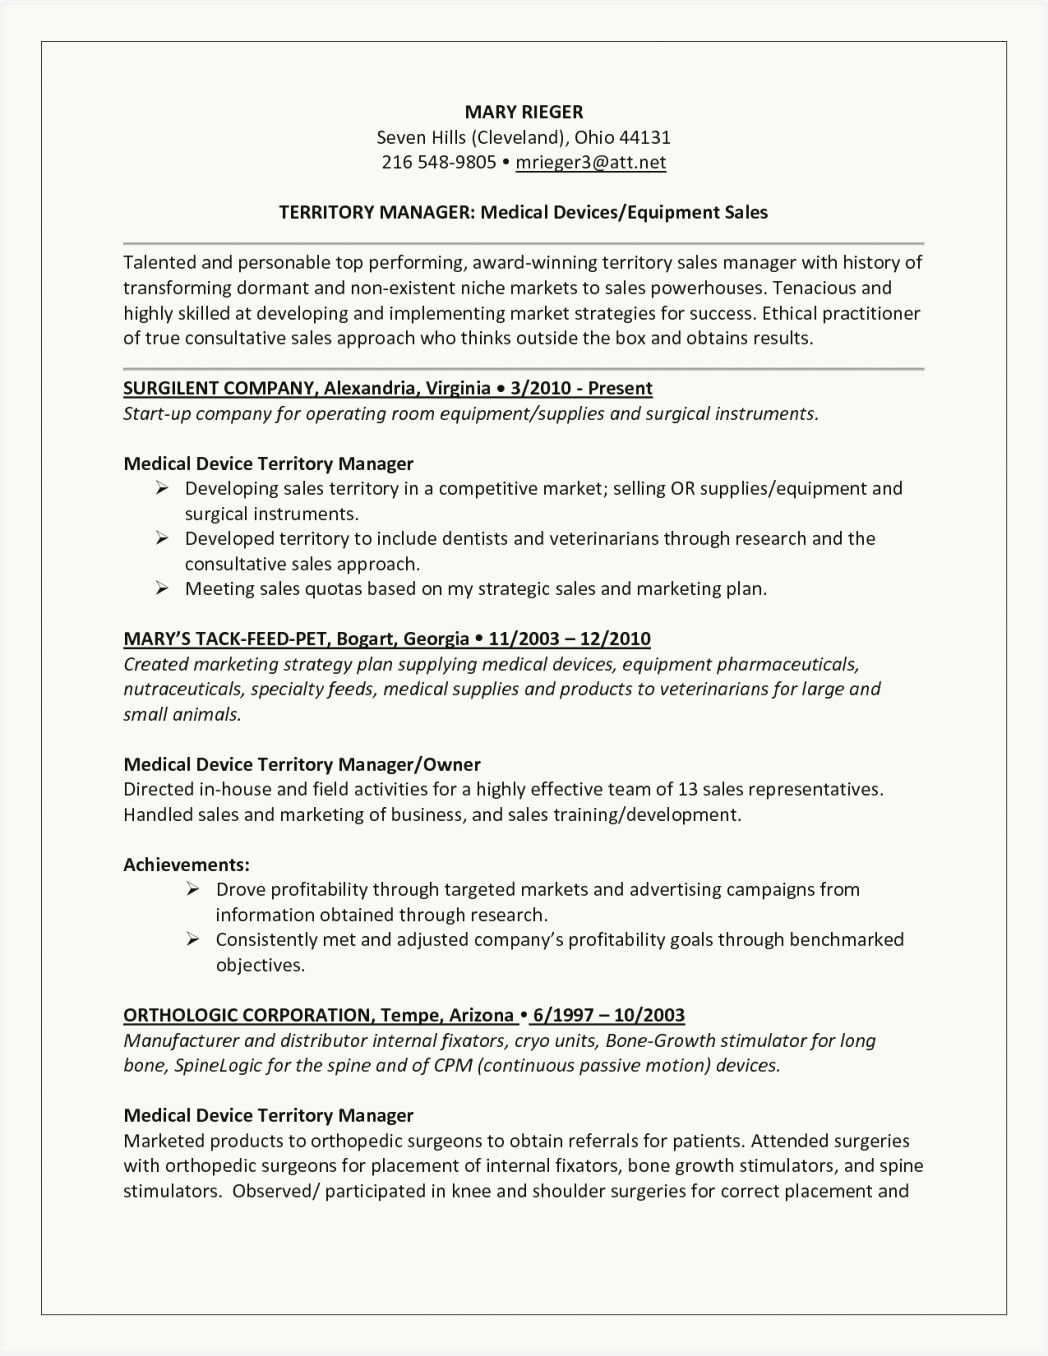 54 Example Business Plan Cover Letter Pics In 2020 With Images